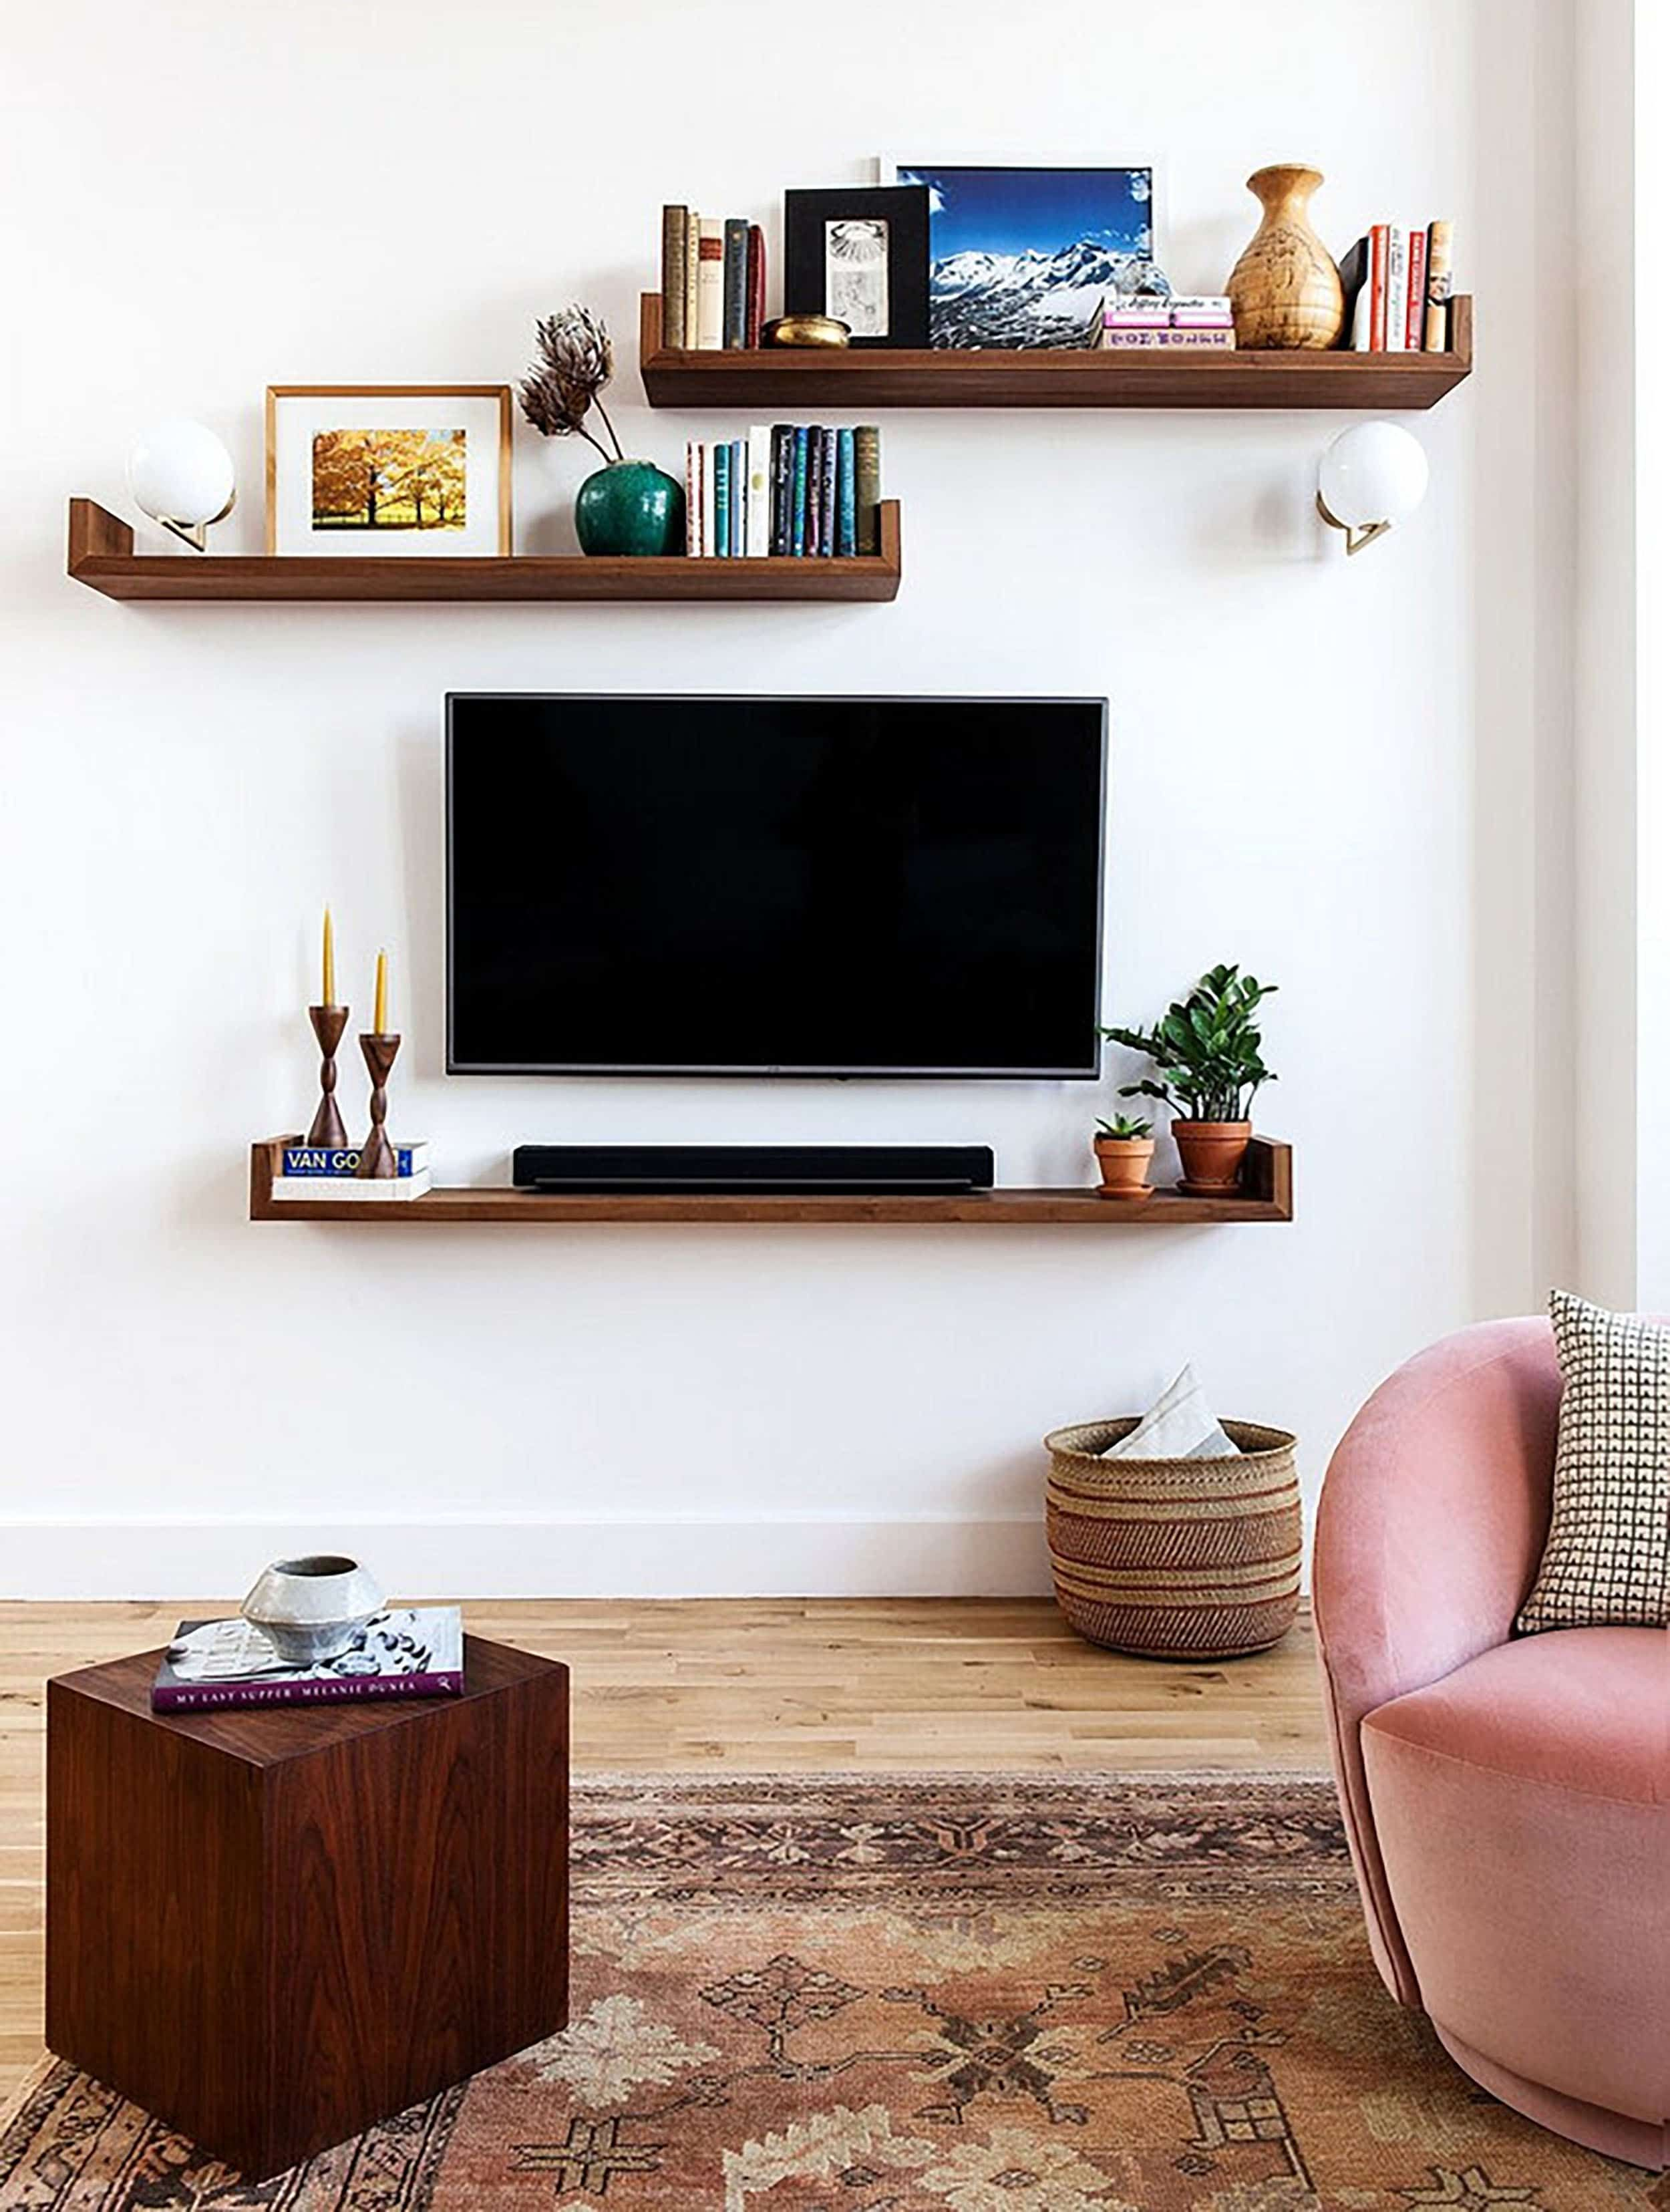 Sara S House Her Awkward Yet Soon To Be Downton Abbey Tv Room Emily Henderson In 2020 Living Room Diy Apartment Living Room Living Room Tv Wall #wall #storage #for #living #room